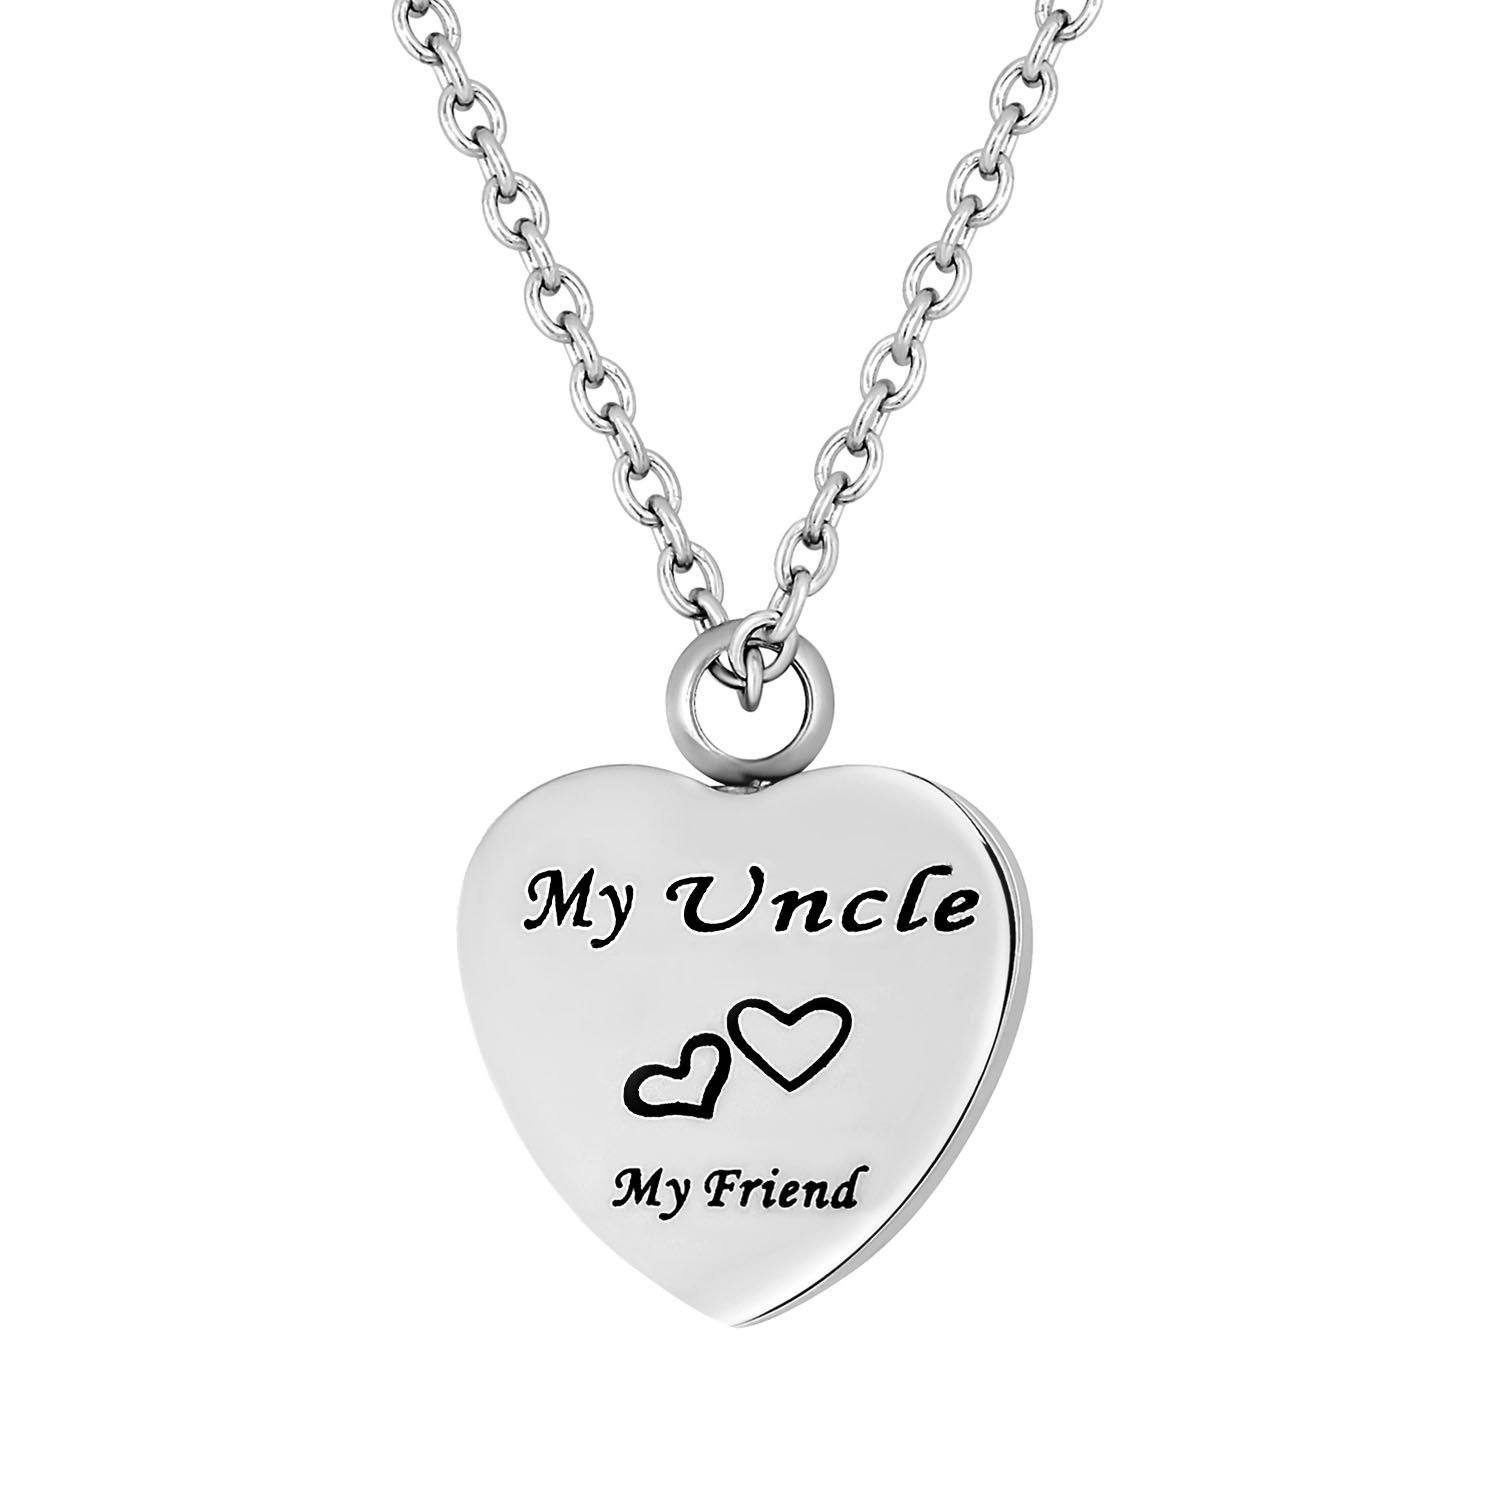 My uncle cremation necklace for ashes urn cremation jewelry cremation jewelry necklace for ashes my uncle aloadofball